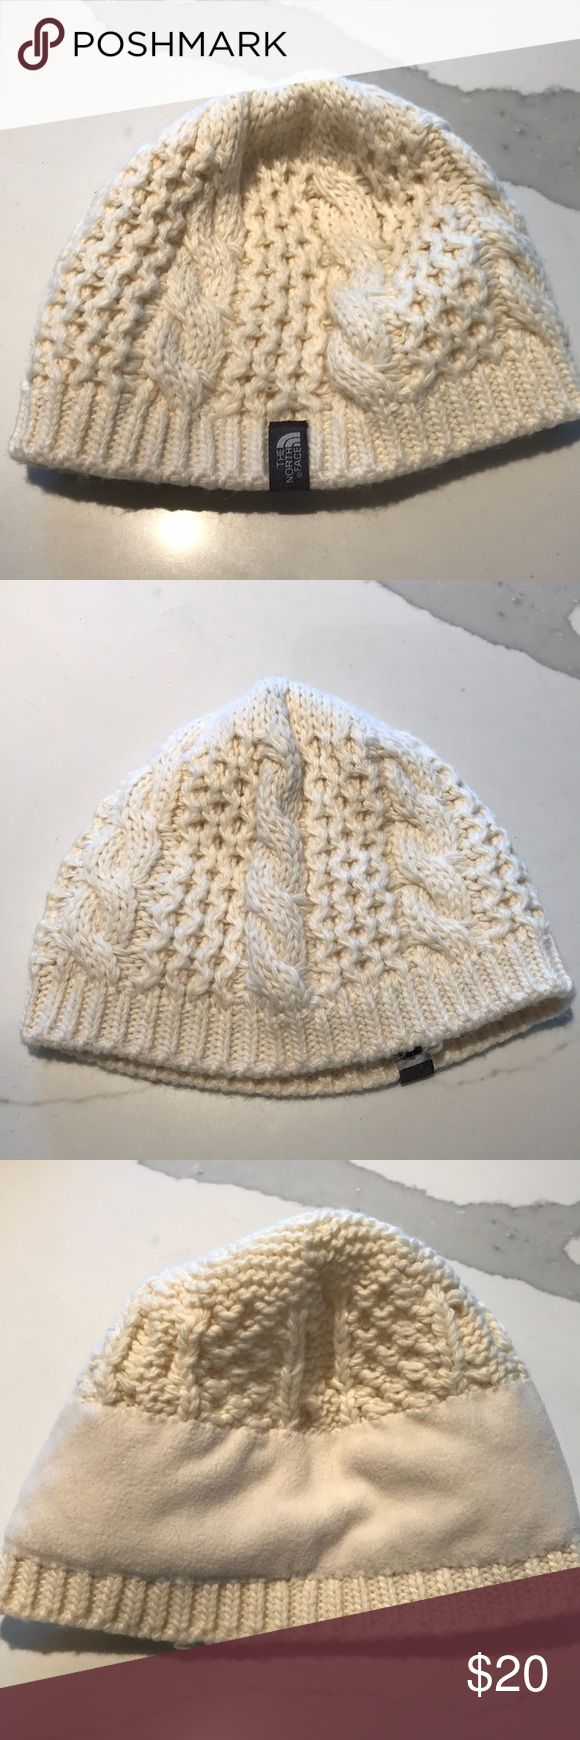 The North Face - Knit Cream Beanie w/ Fleece liner Super cute and super warm. The North Face fleece lined beanie. Looks like new. Super soft and not itchy at all. The North Face Accessories Hats